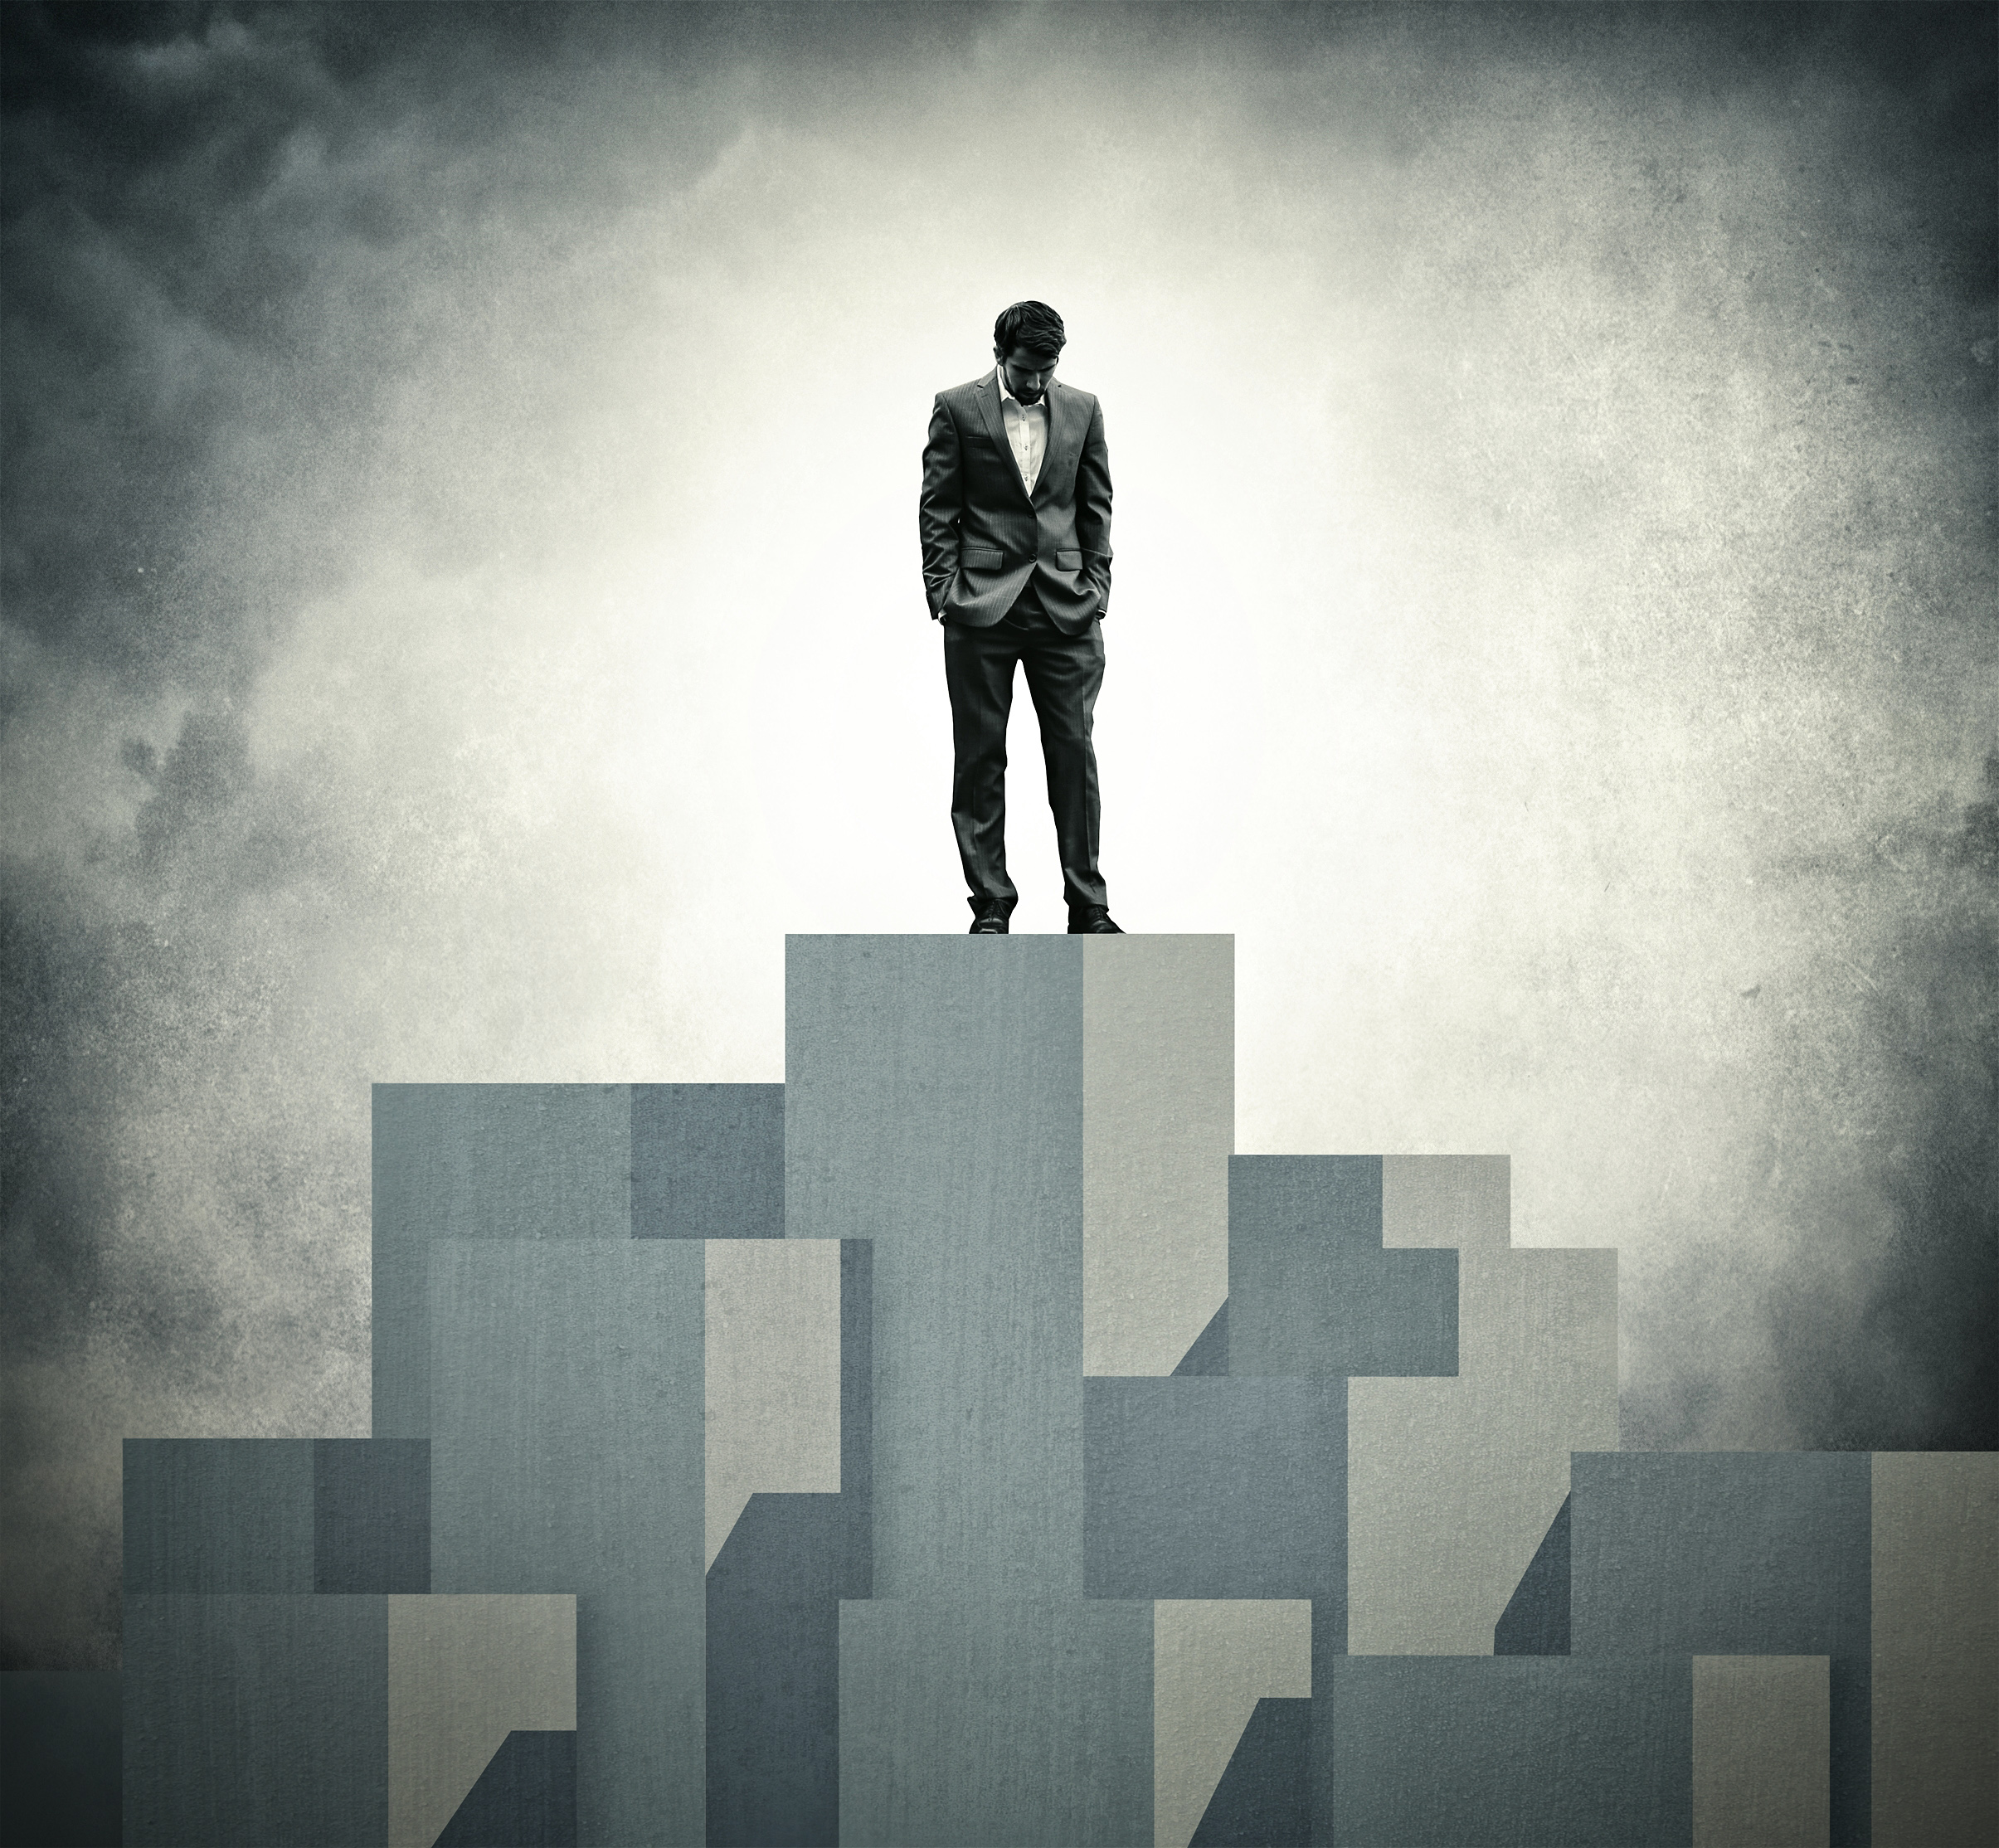 Lonely at the Top - Lone Businessman at the Top, Adult, Portrait, Sky, Search, HQ Photo